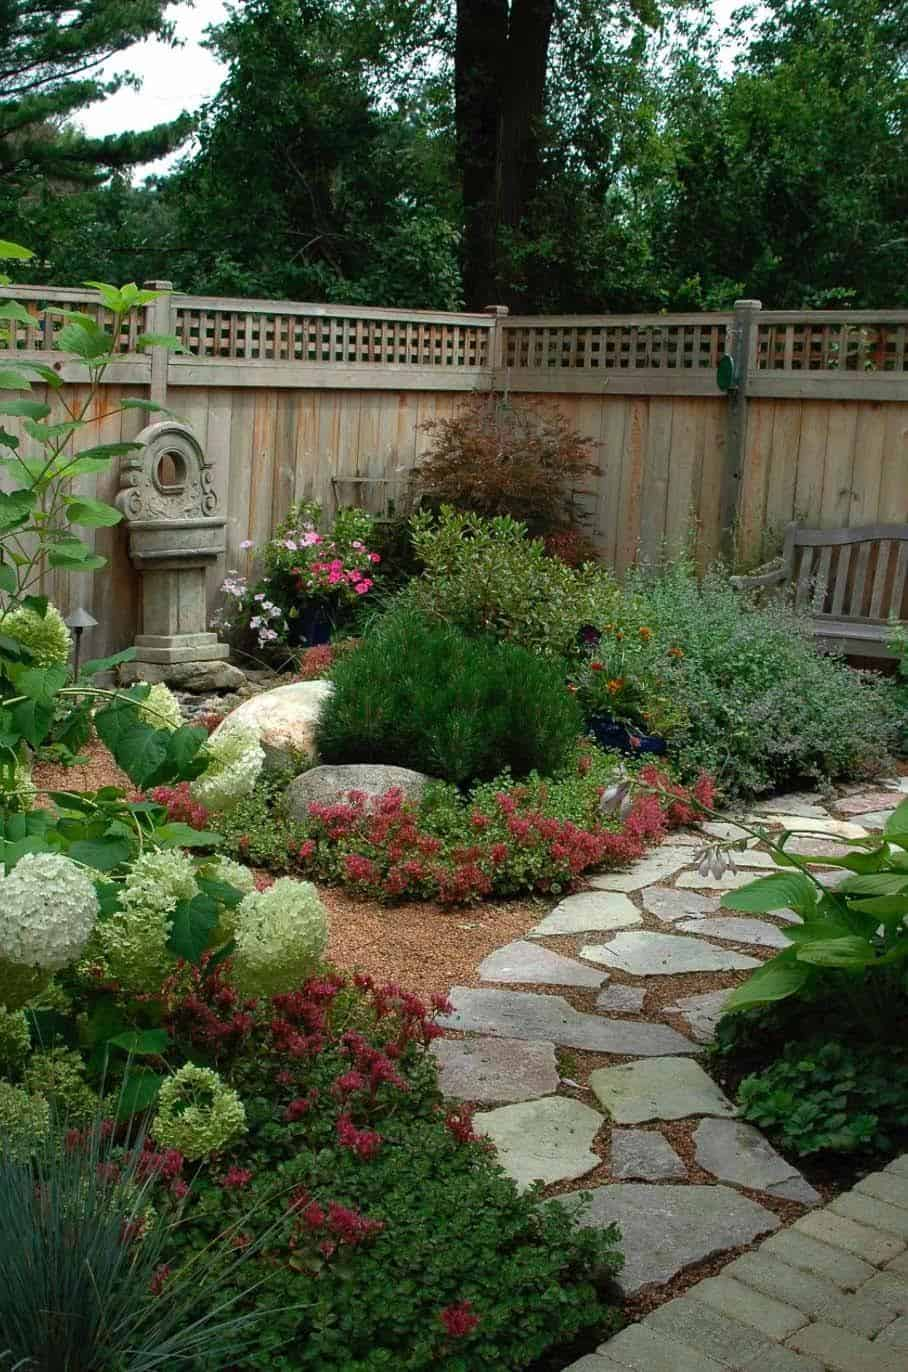 Garden Stone Pathway Ideas-30-1 Kindesign